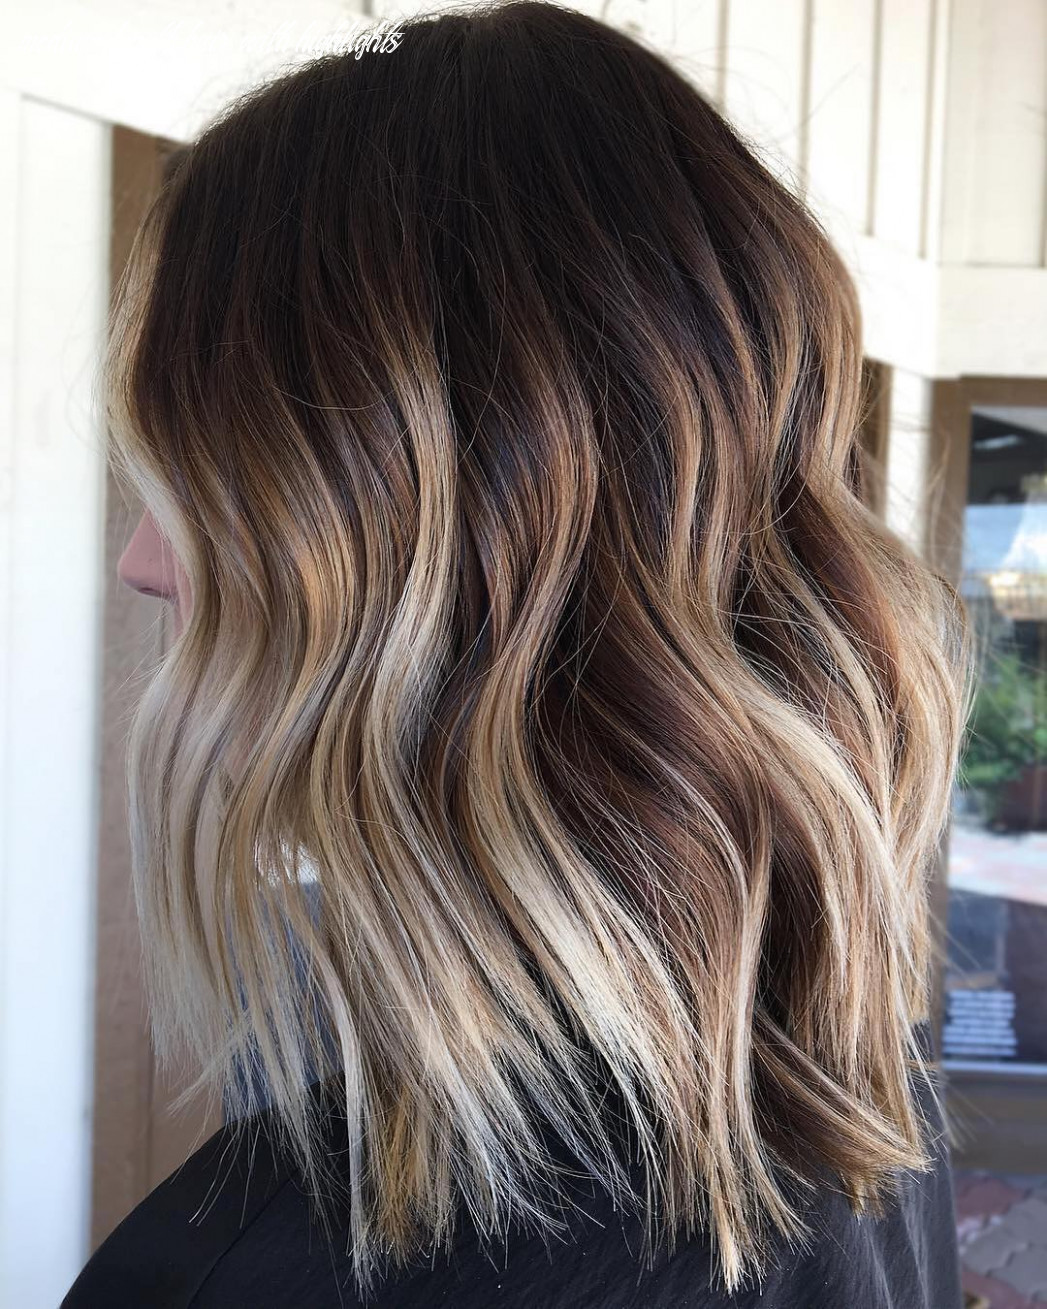 8 Trendy Brown Balayage Hairstyles for Medium-Length Hair 8